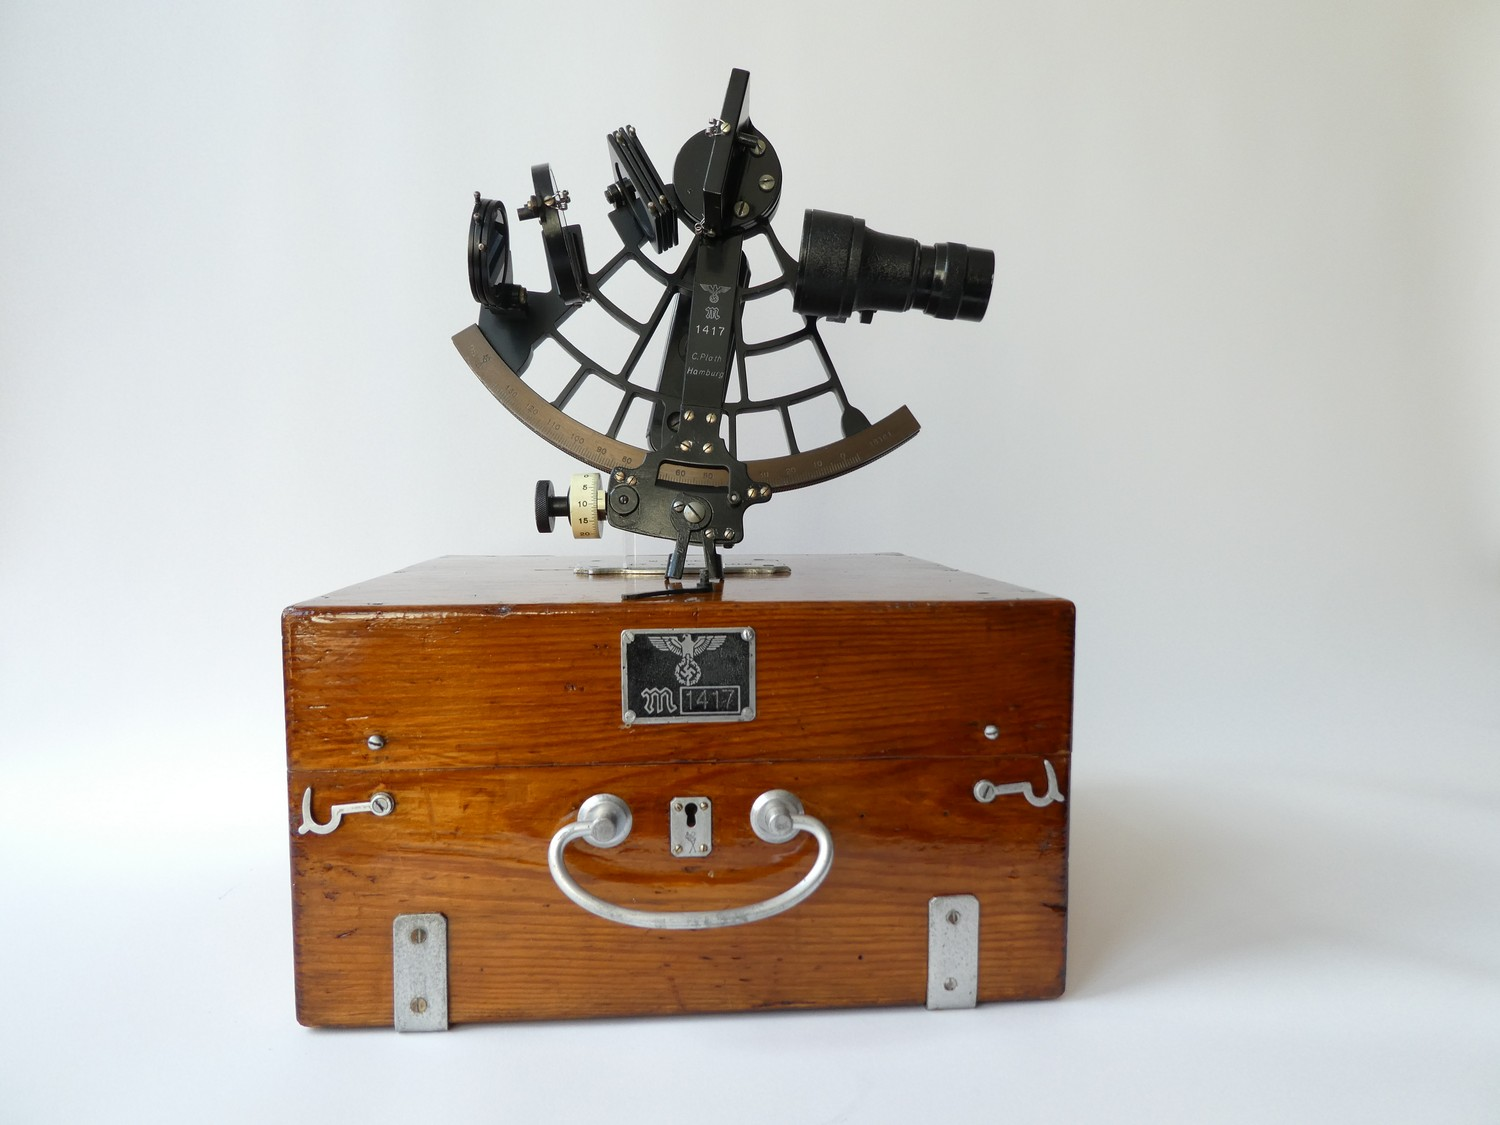 KRIEGSMARINE SEXTANT BY PLATH HAMBURG 1940